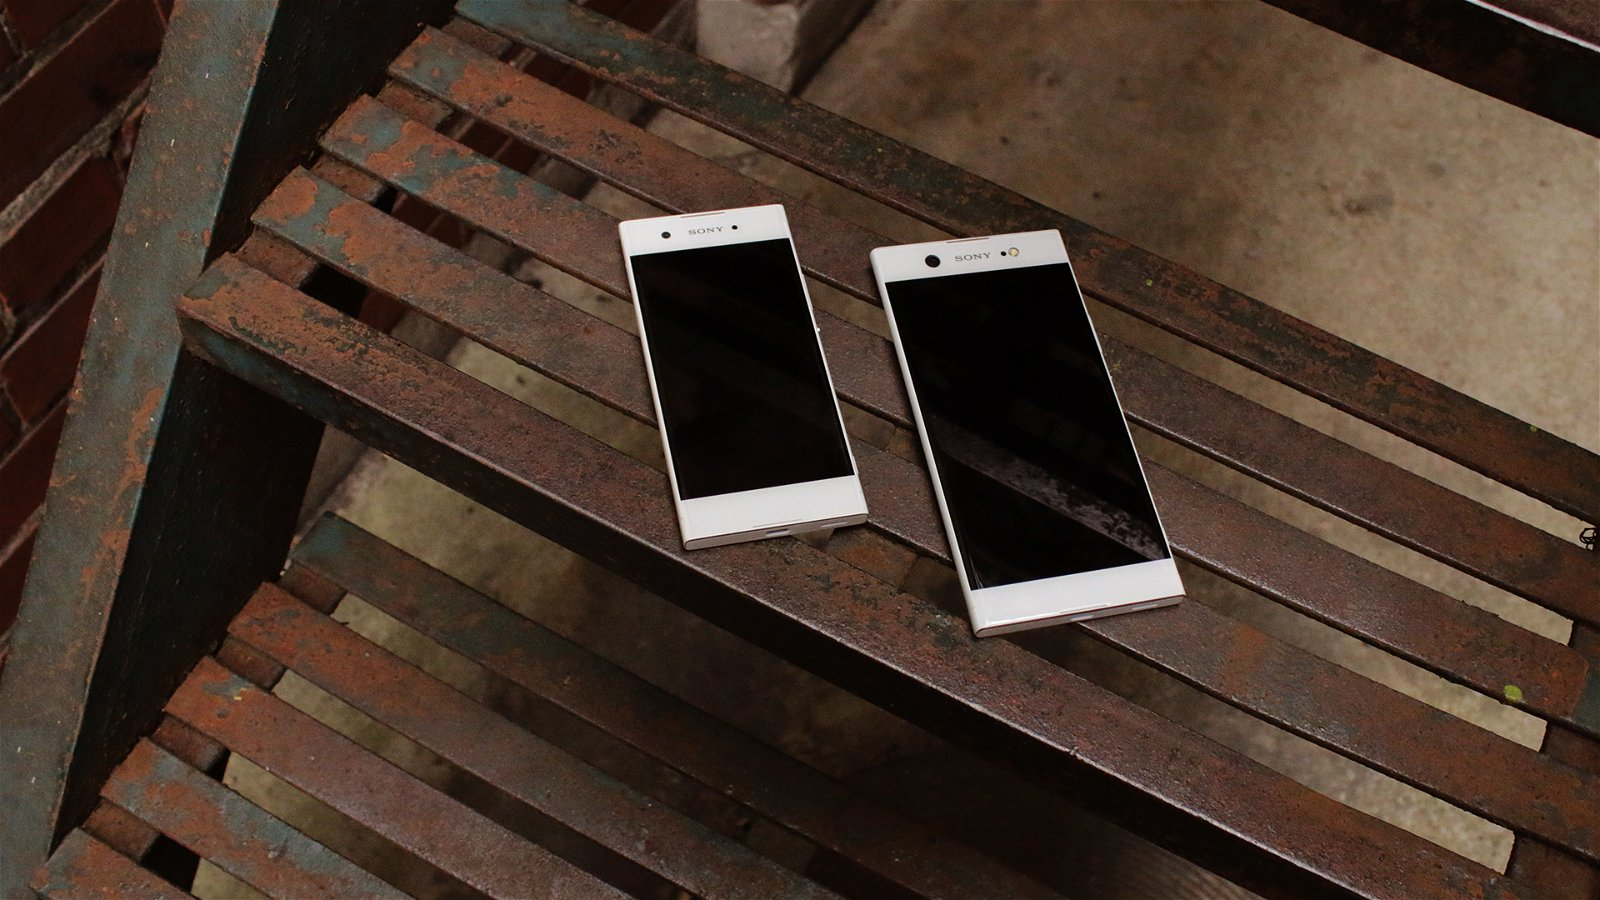 Title: Sony Xperia Xa1 And Xa1 Ultra (Smartphone) Review – Far From The Best Experience 5